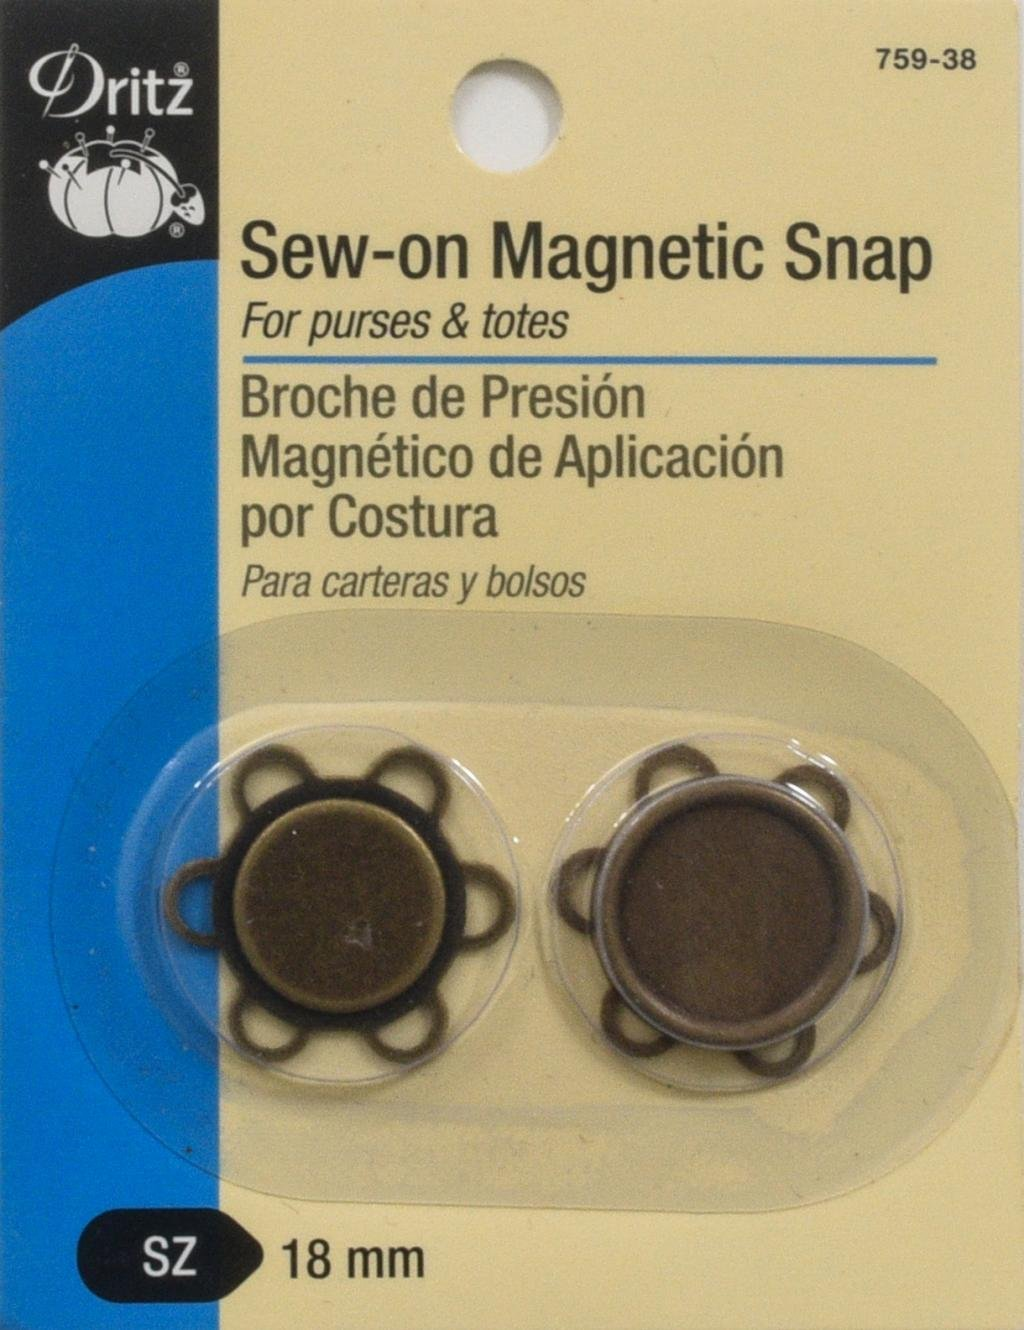 Dritz- Sew-on Magnetic Snap 759-38